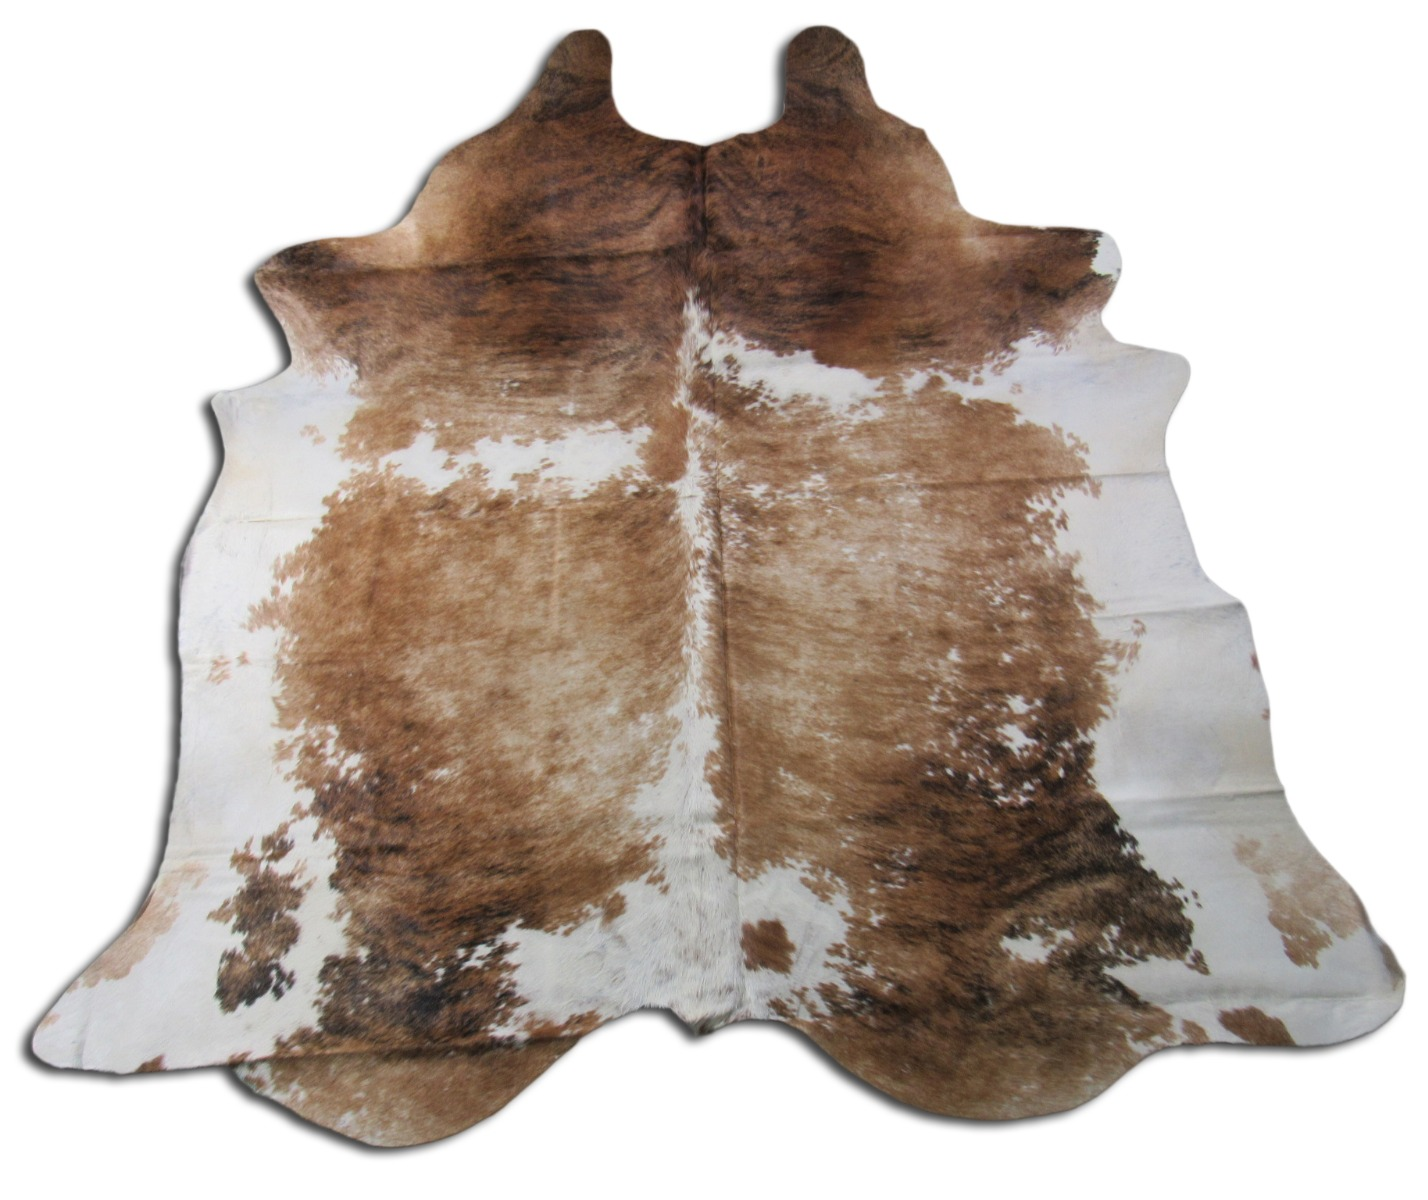 A-1361 Beige and White Brindle Cowhide Rug Size: 8 1/4' X 7'